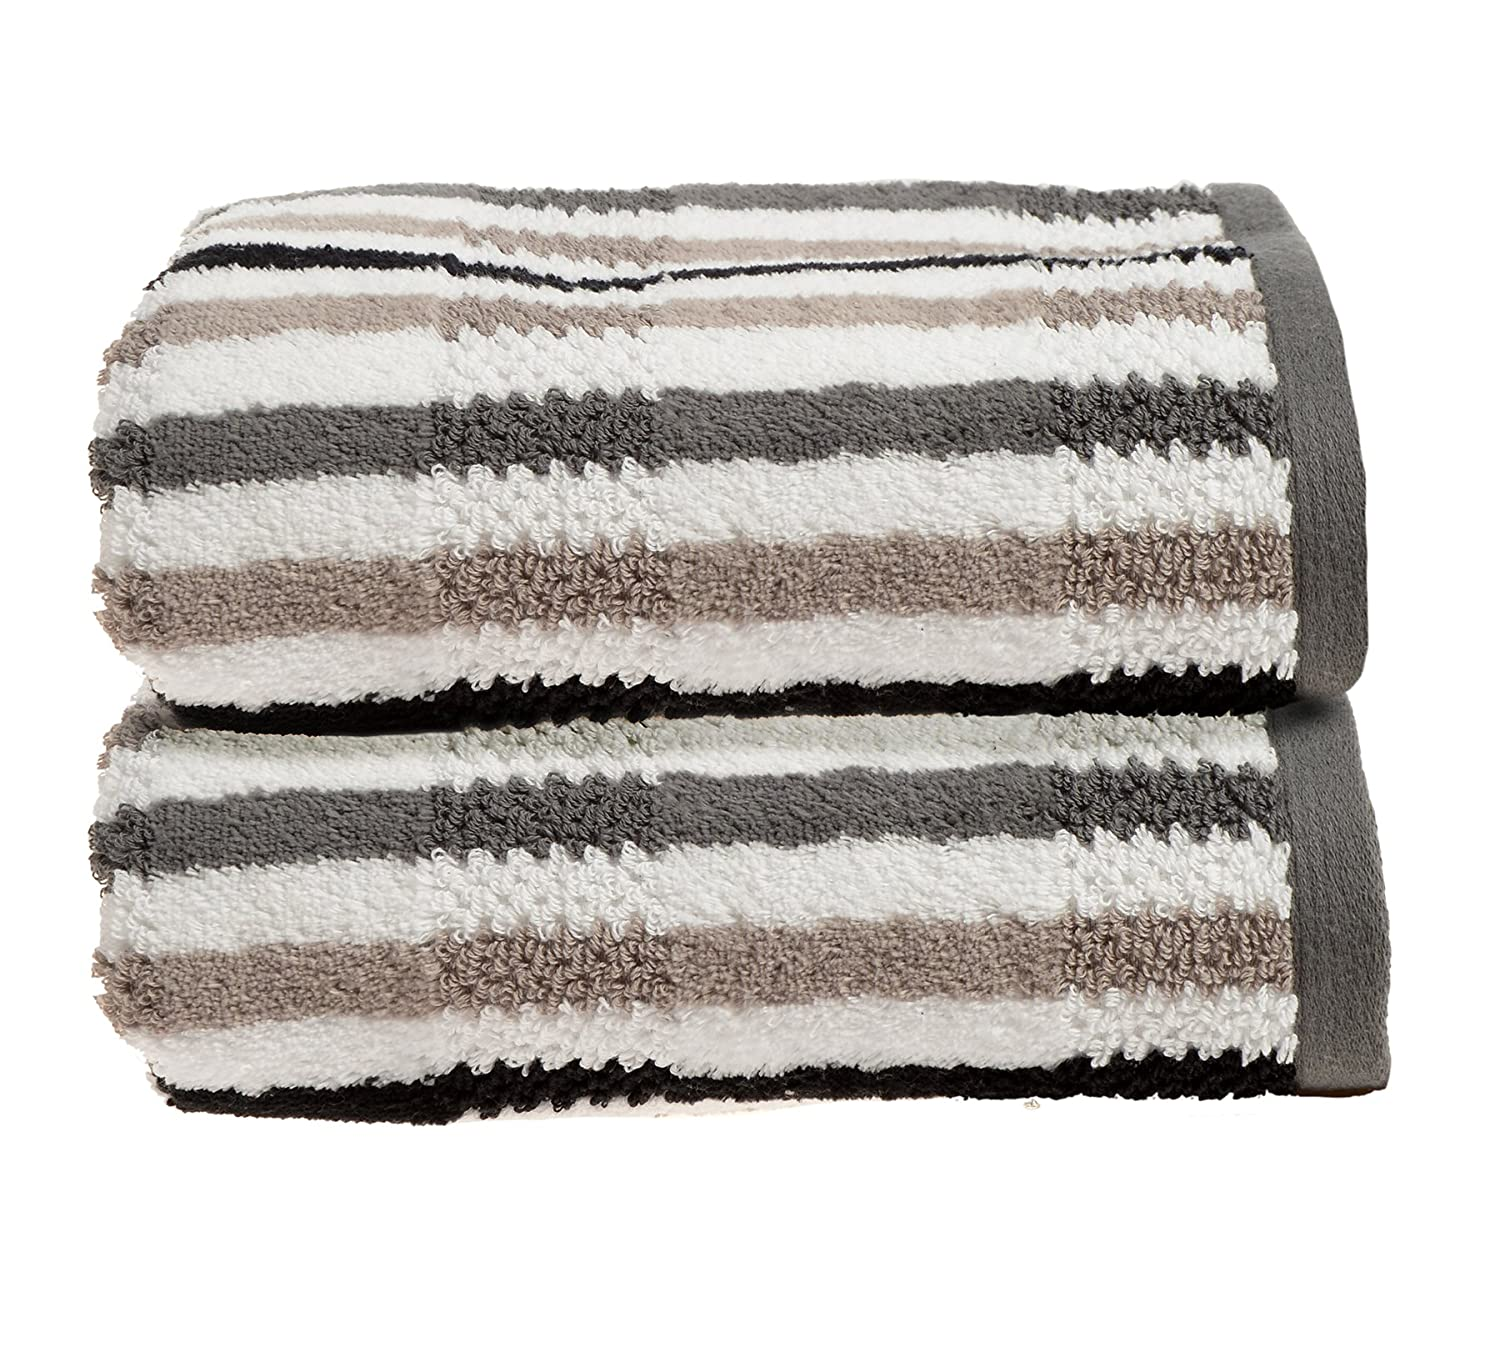 Allure Bath Fashions Luxury Towel in 100% Cotton California Collection 2 x Absorbent and Quick Dry Hand Towels Set 50 x 90cm 550gsm in Monochrome Silver Grey Black (2x Hand Towels)